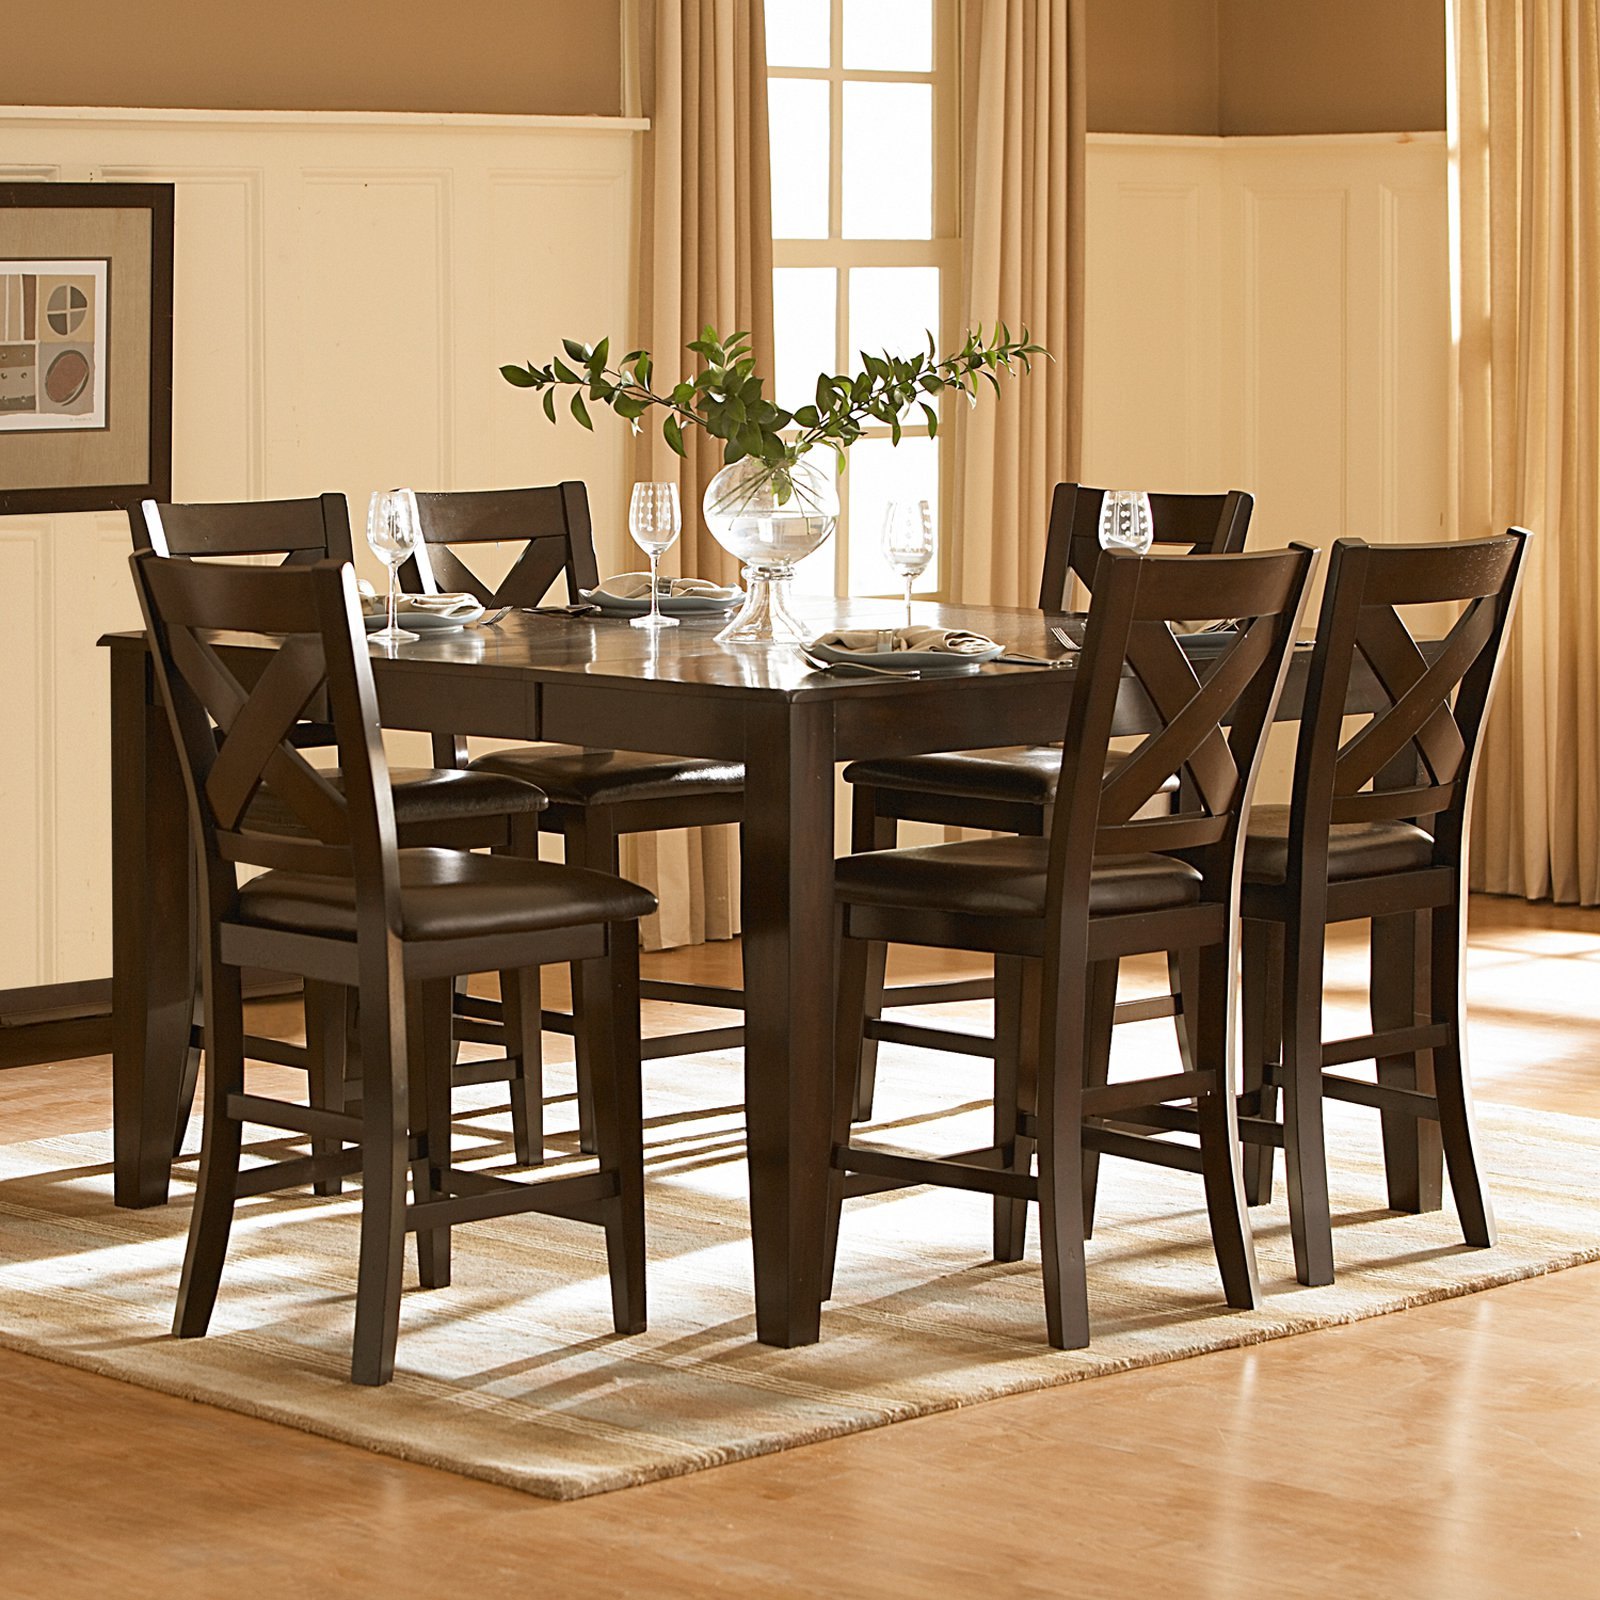 High Quality Homelegance Crown Point 7 Piece Counter Height Dining Set